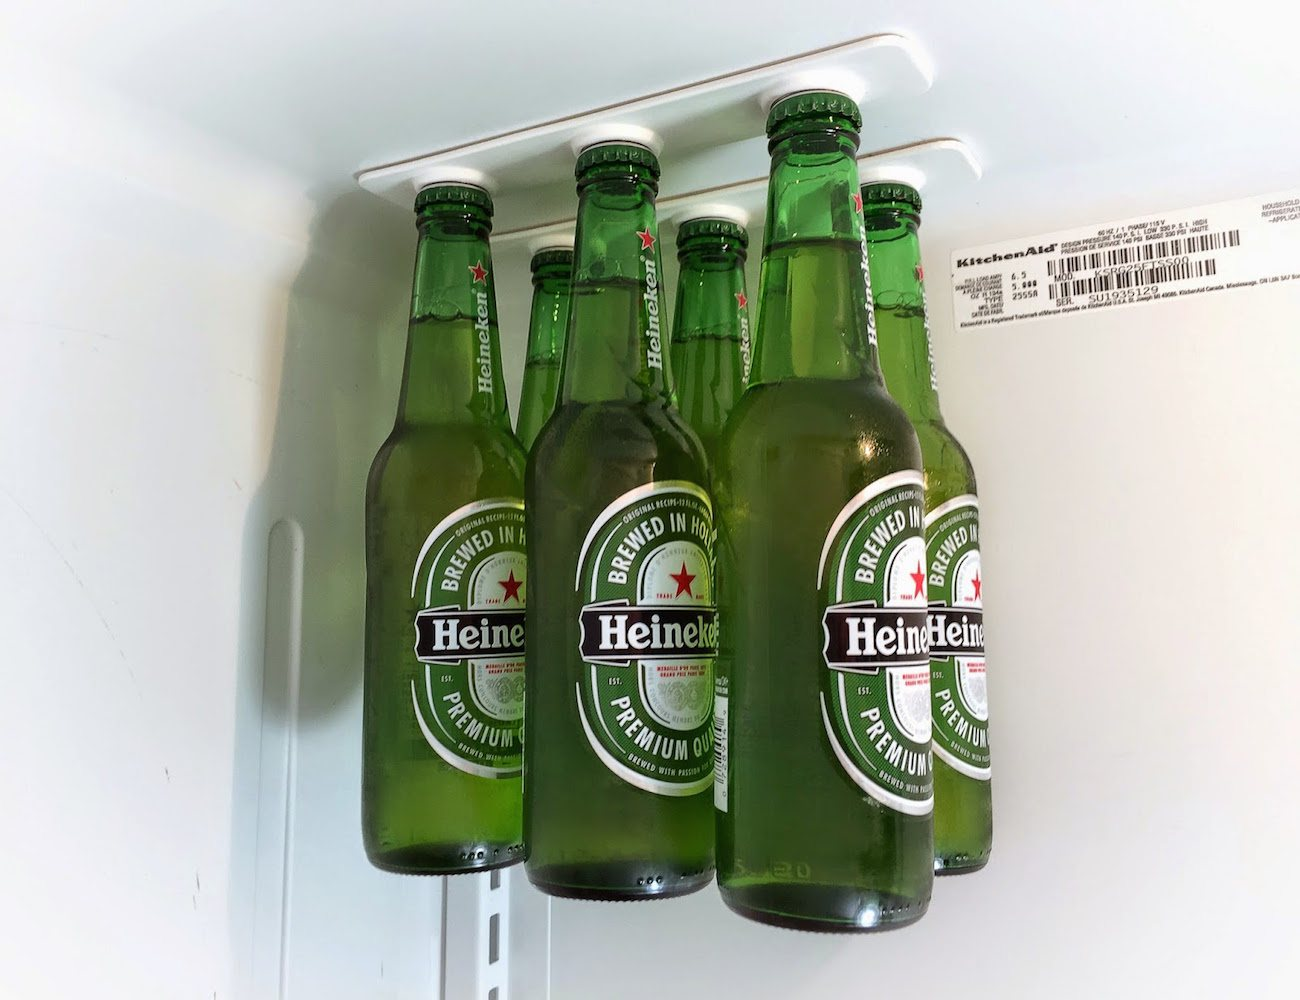 BottleLoft – Magnetic Bottle Hanger for Your Refrigerator